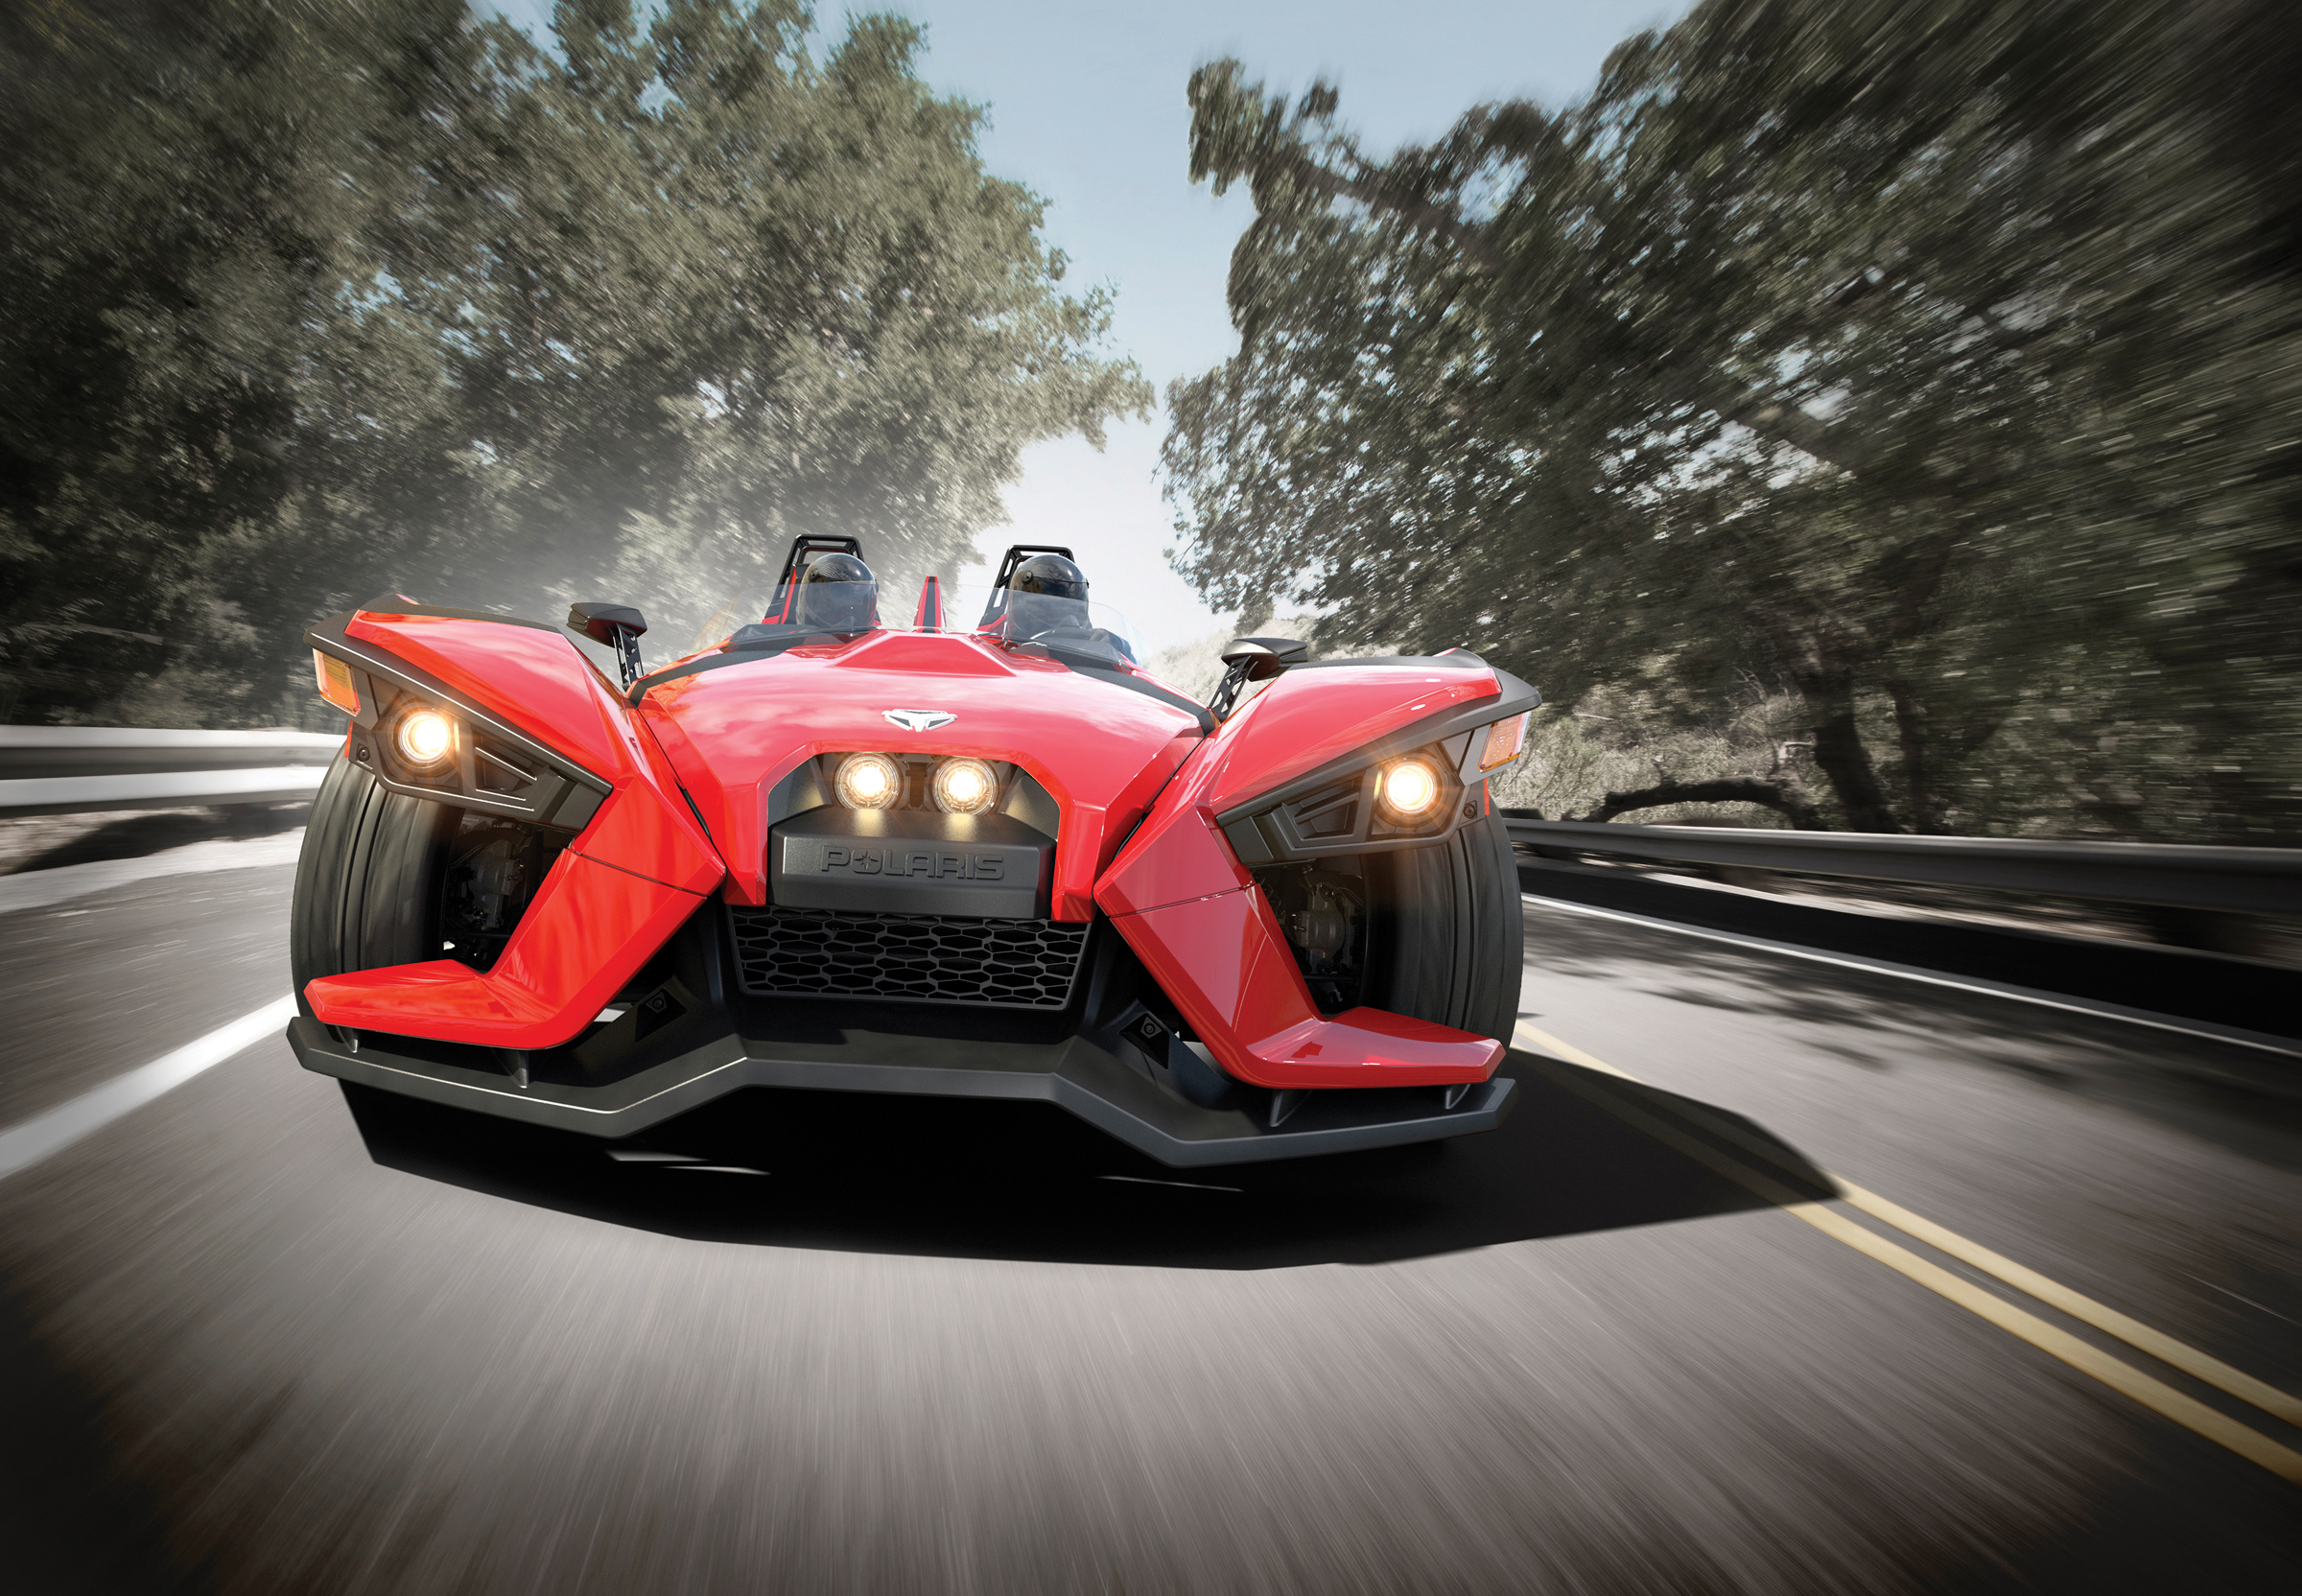 The all-new 2015 Polaris Slingshot - the awe-inspiring 3-wheeled roadster that delivers head-turning exhilaration. Starting at $19,999. Shown in Red Pearl. Photo c/o Polaris Industries.